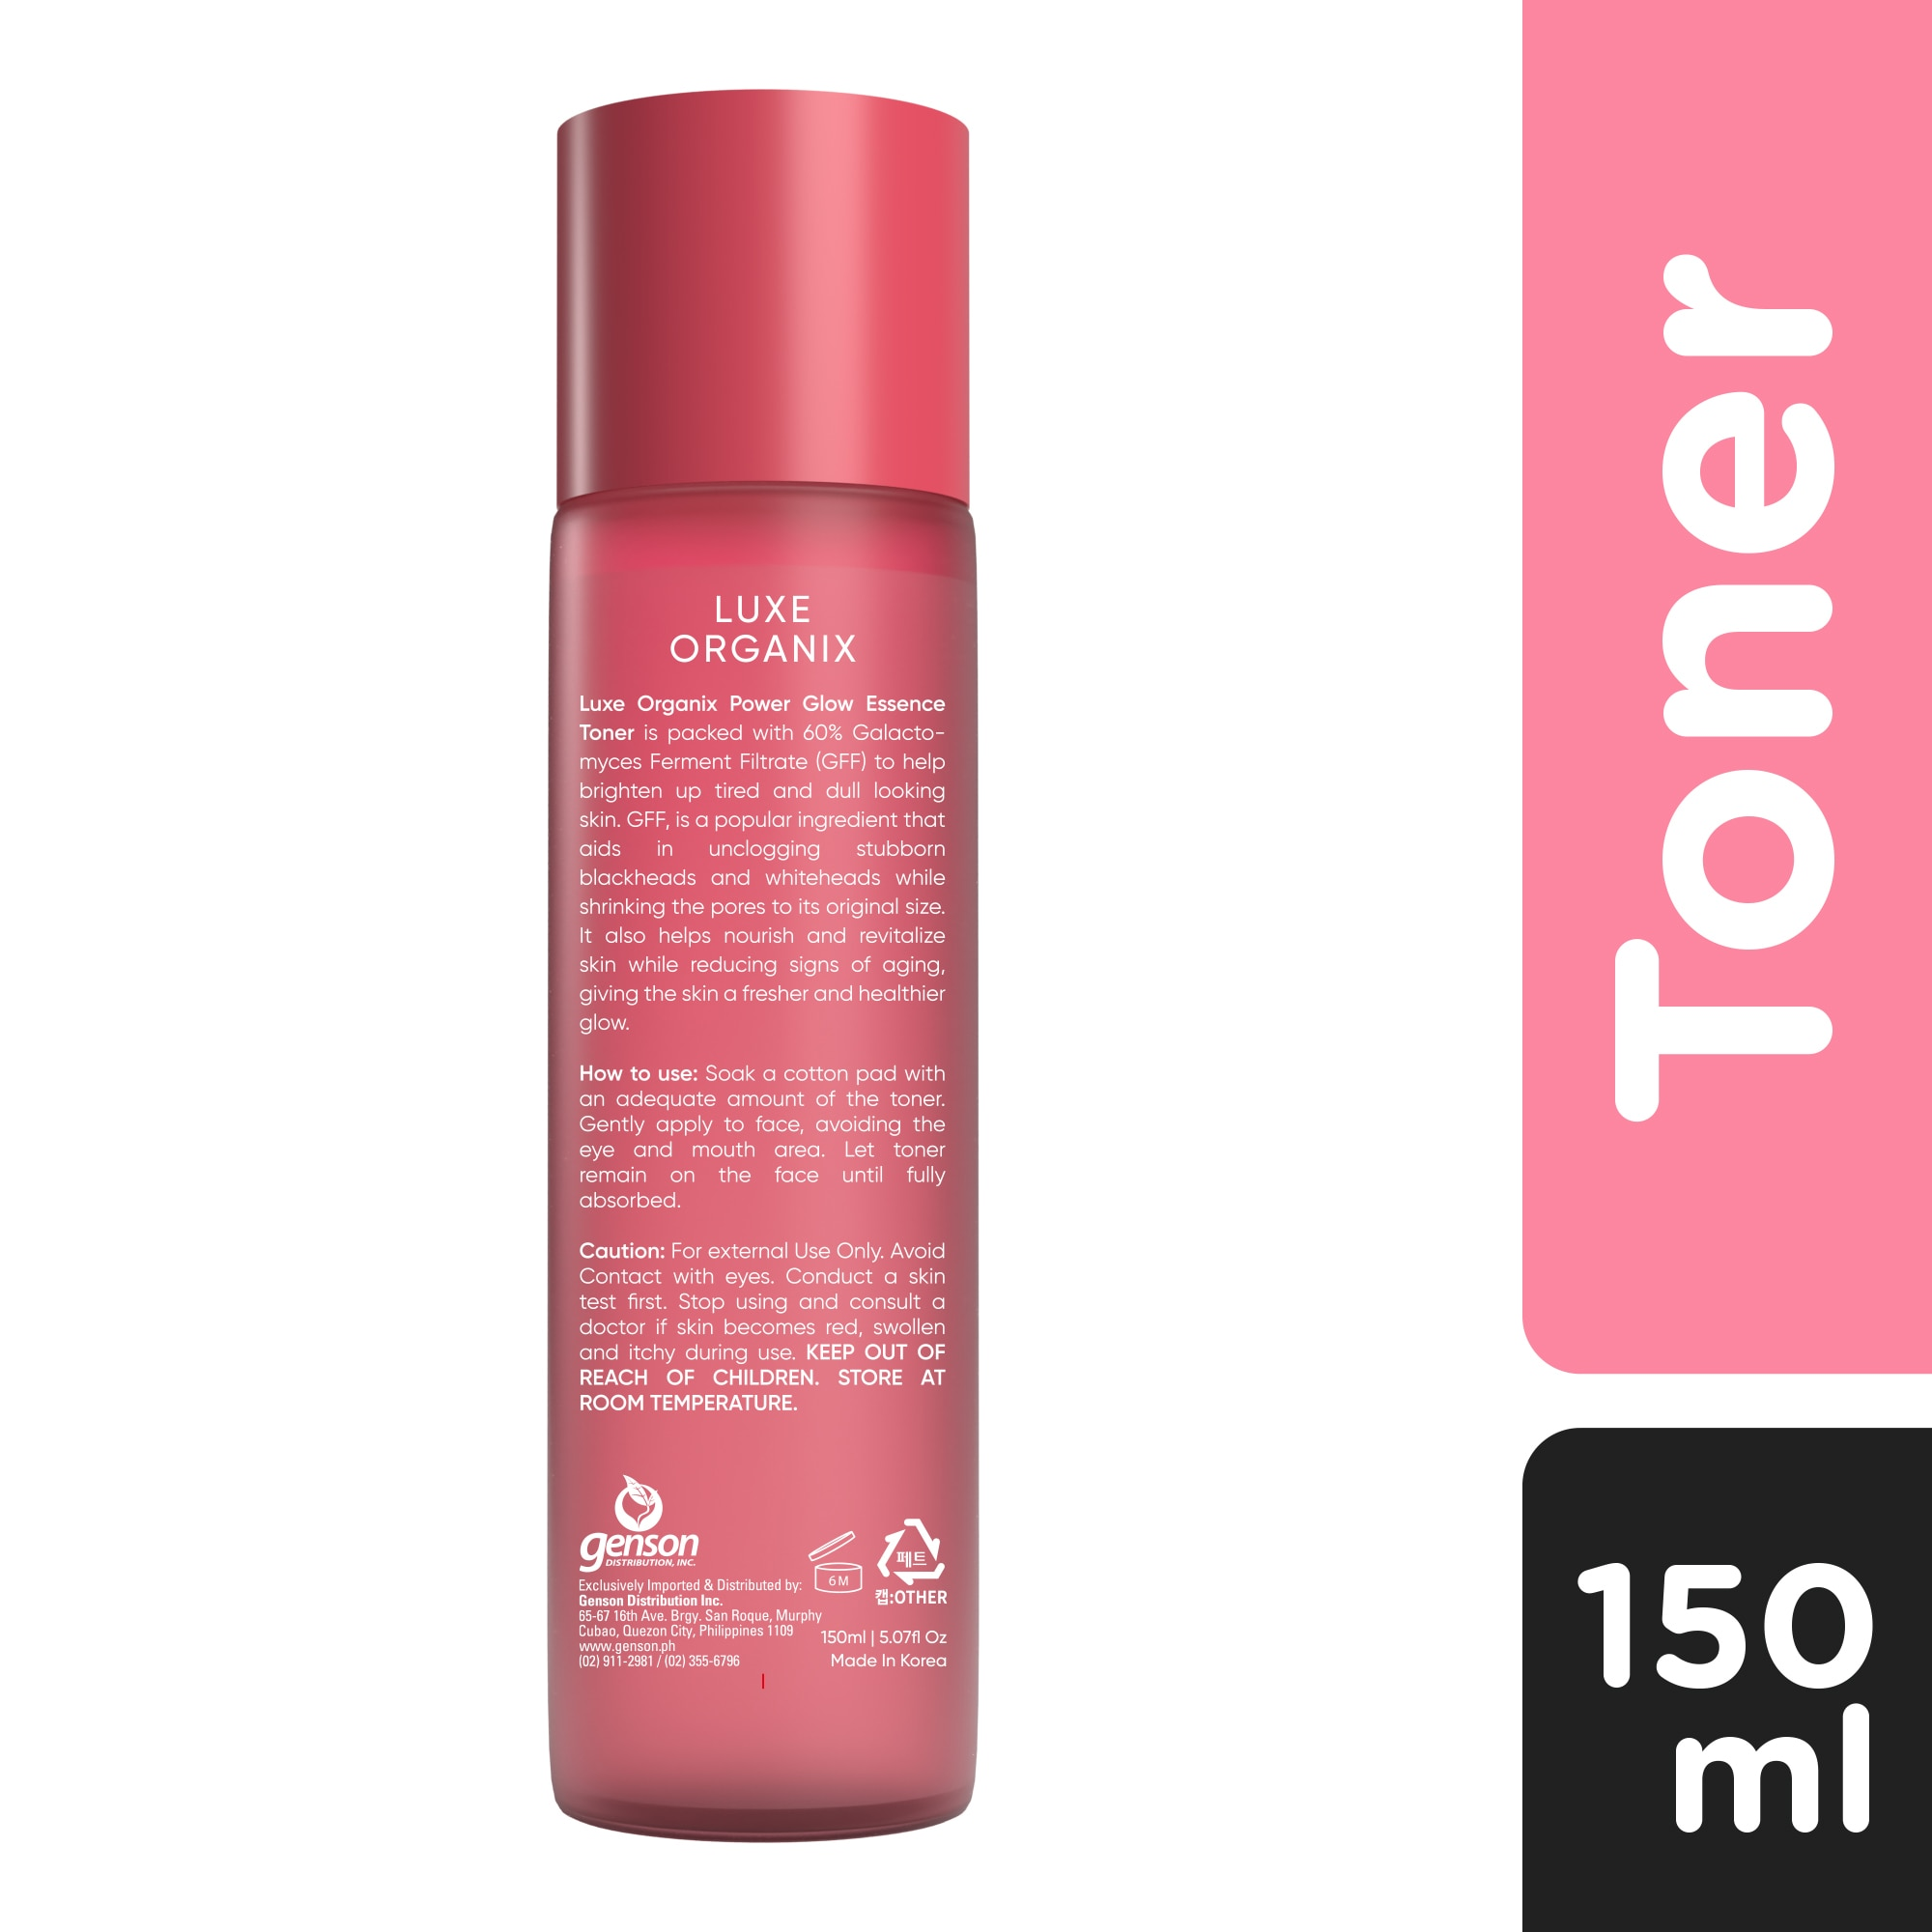 LUXE ORGANIXLuxe Organix Power Glow Essence Toner 150ml,For WomenBest Selling Products